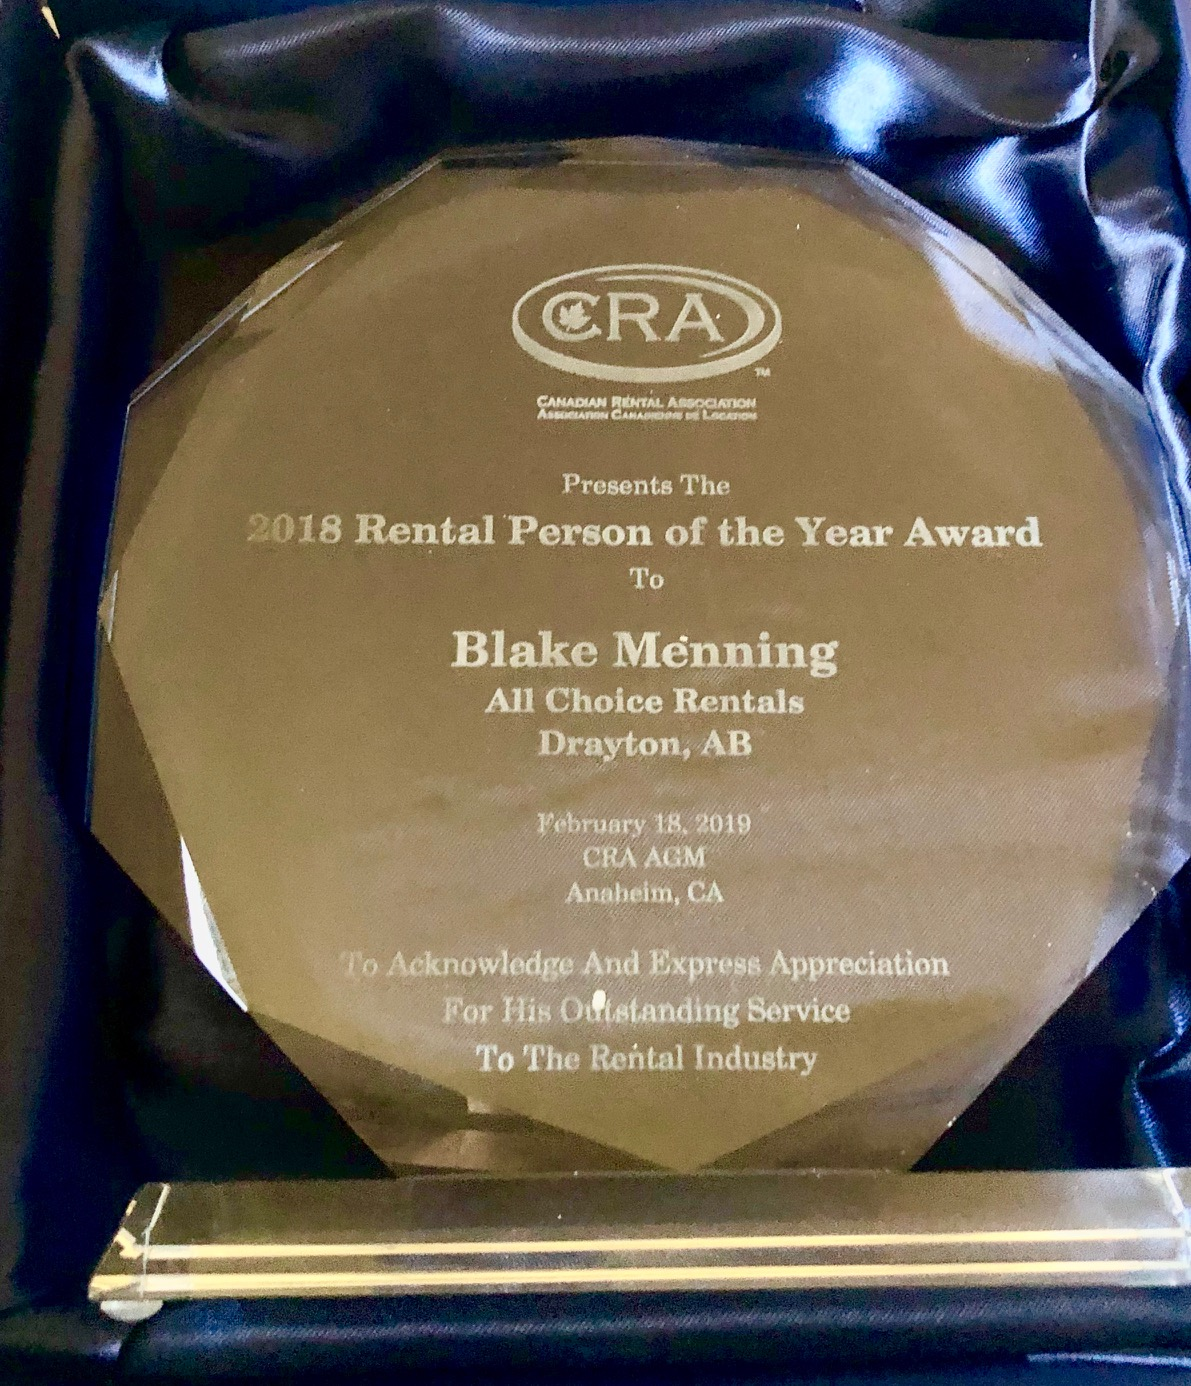 Blake Menning - Rental Person Of The Year Award